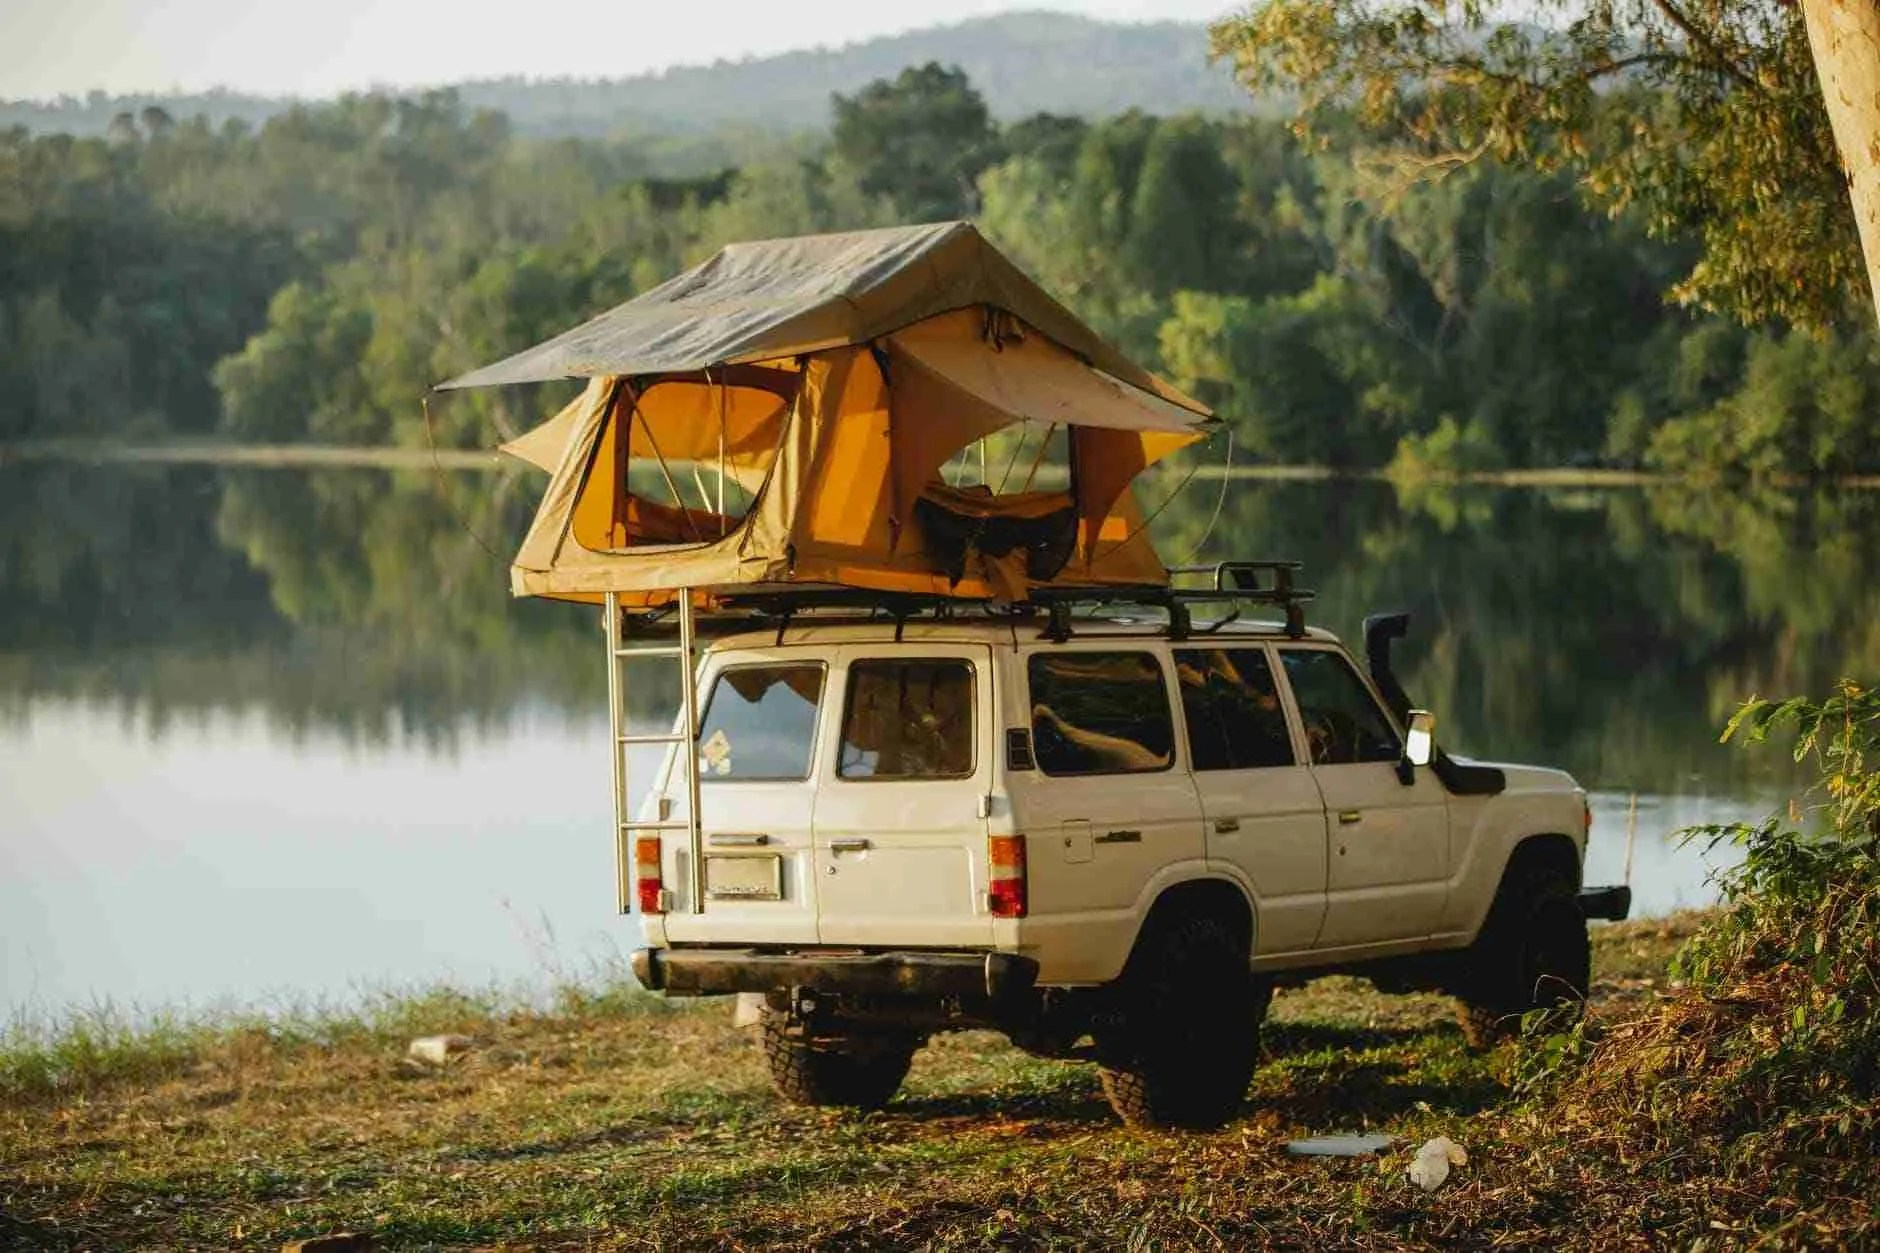 off road car with tent on roof parked on lake shore in forest